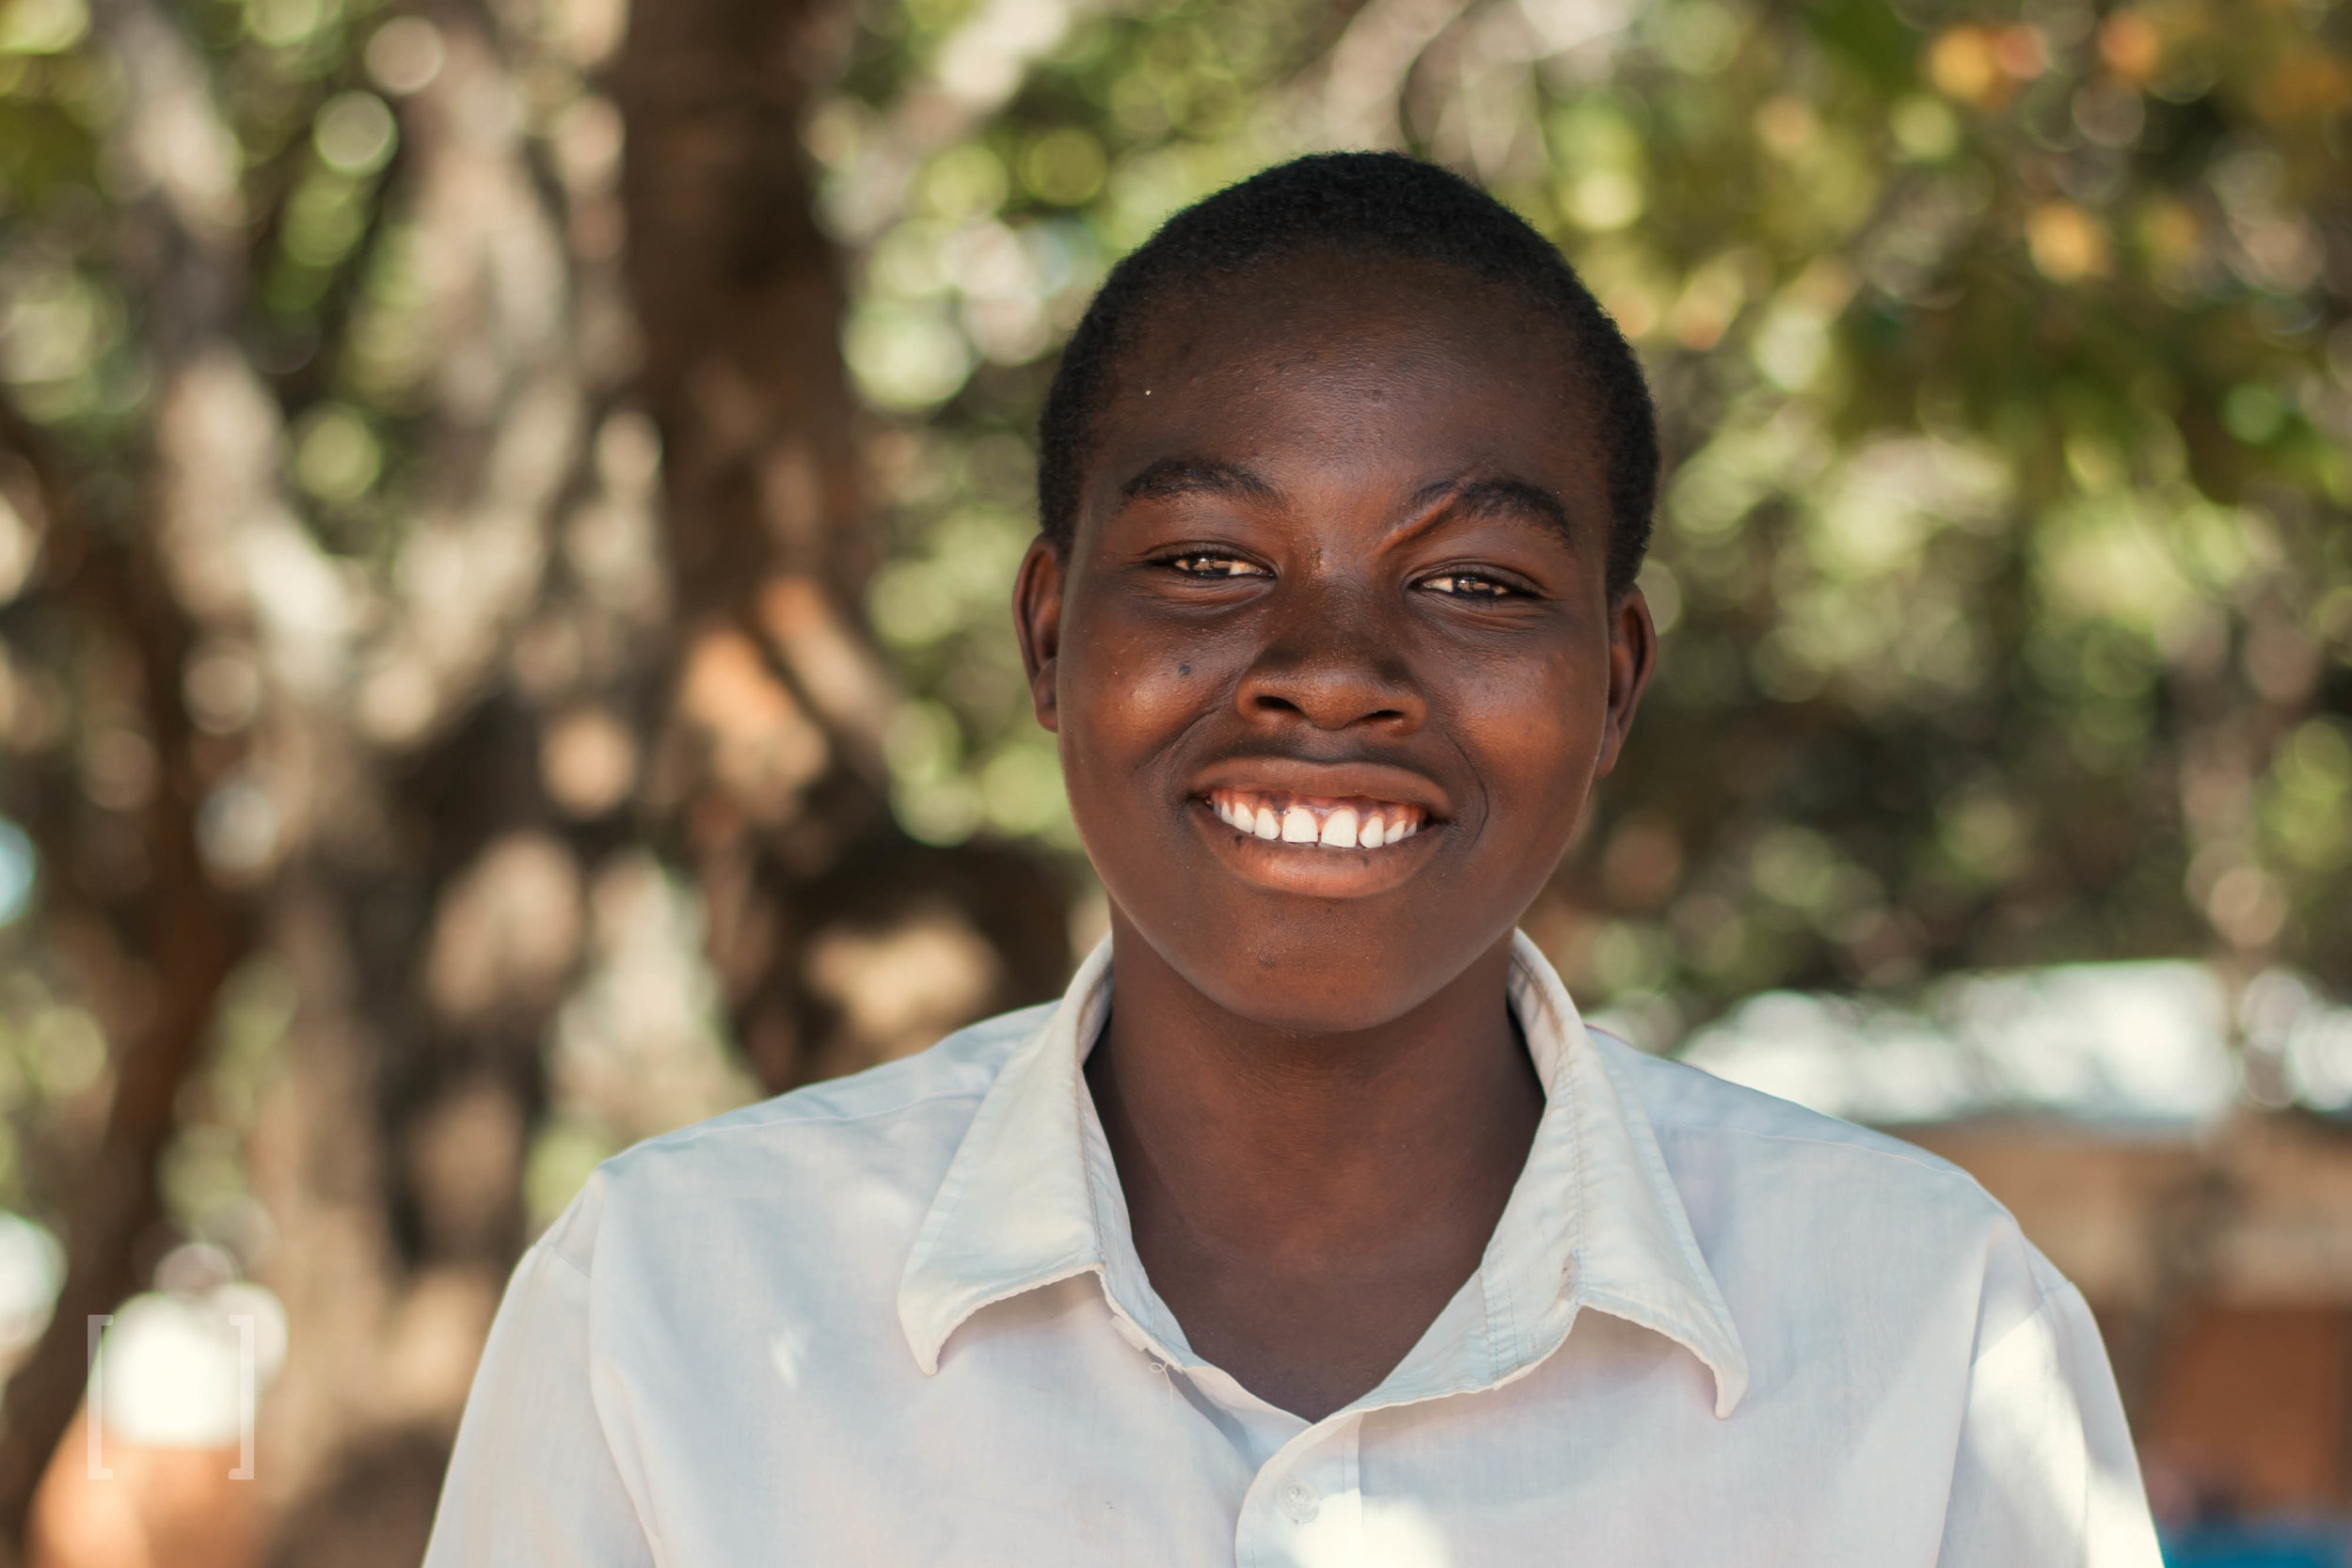 Carla - Carla enjoys playing with friends and singing. She would like to become a Police Inspector General one day. Help her get there!